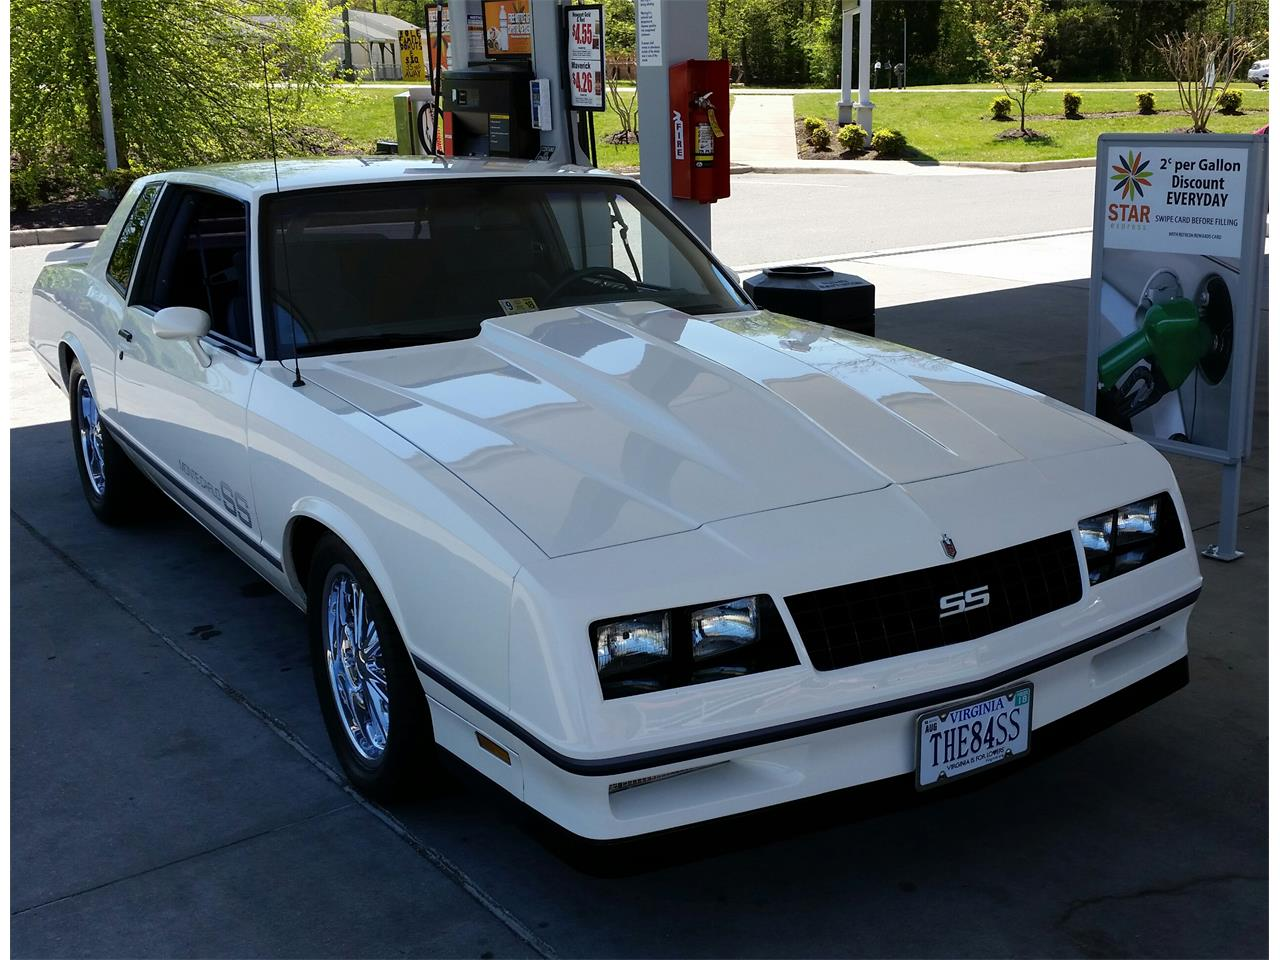 1984 chevrolet monte carlo ss for sale classiccars com cc 1194498 1984 chevrolet monte carlo ss for sale